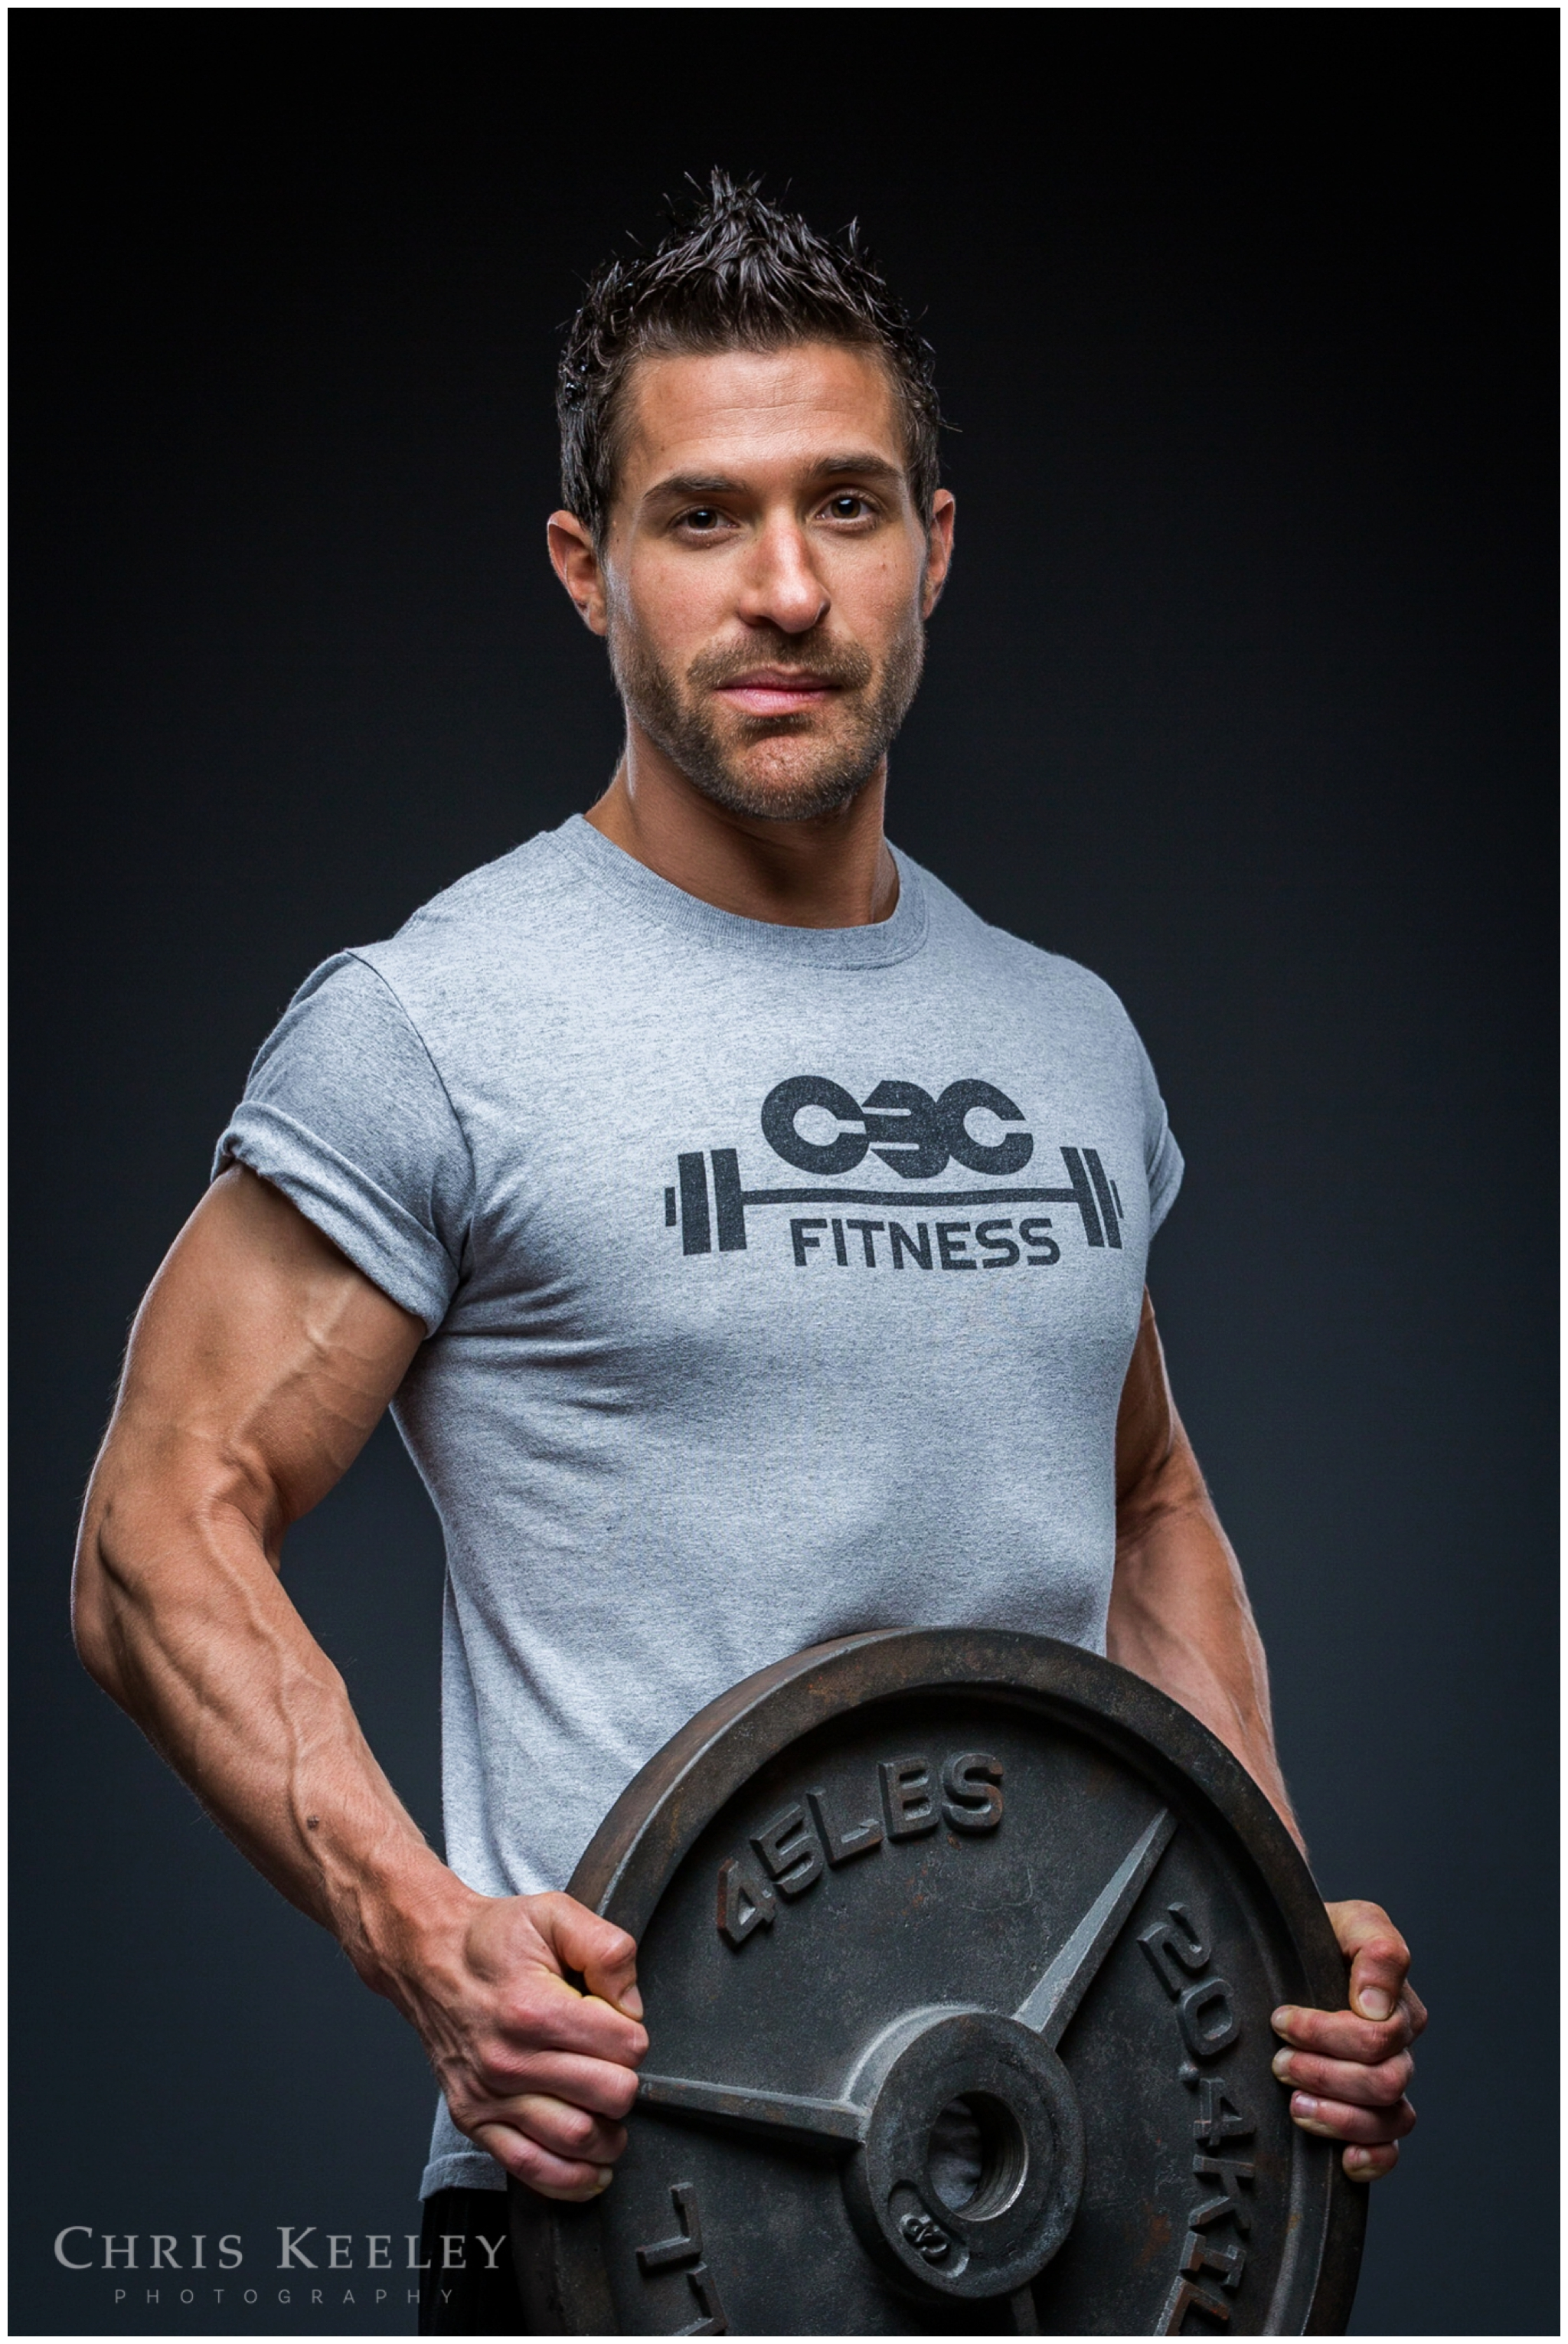 fitness-photos-personal-trainer-maine-new-hampshire-chris-keeley-photography-01.jpg